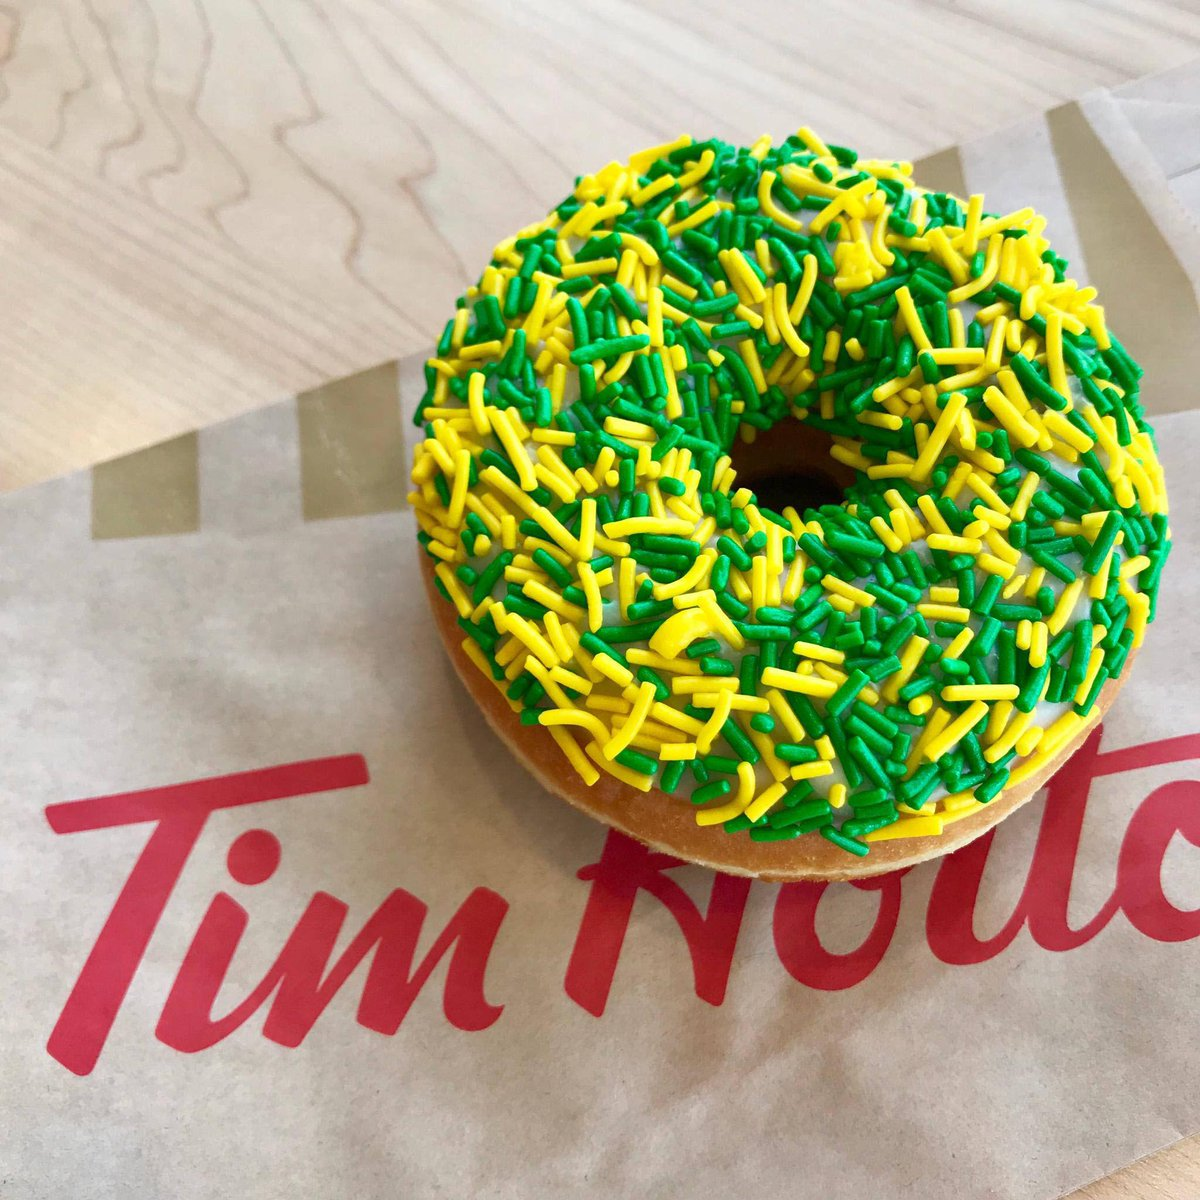 SJHL: Tim Hortons Raises More Than $800K For Humboldt